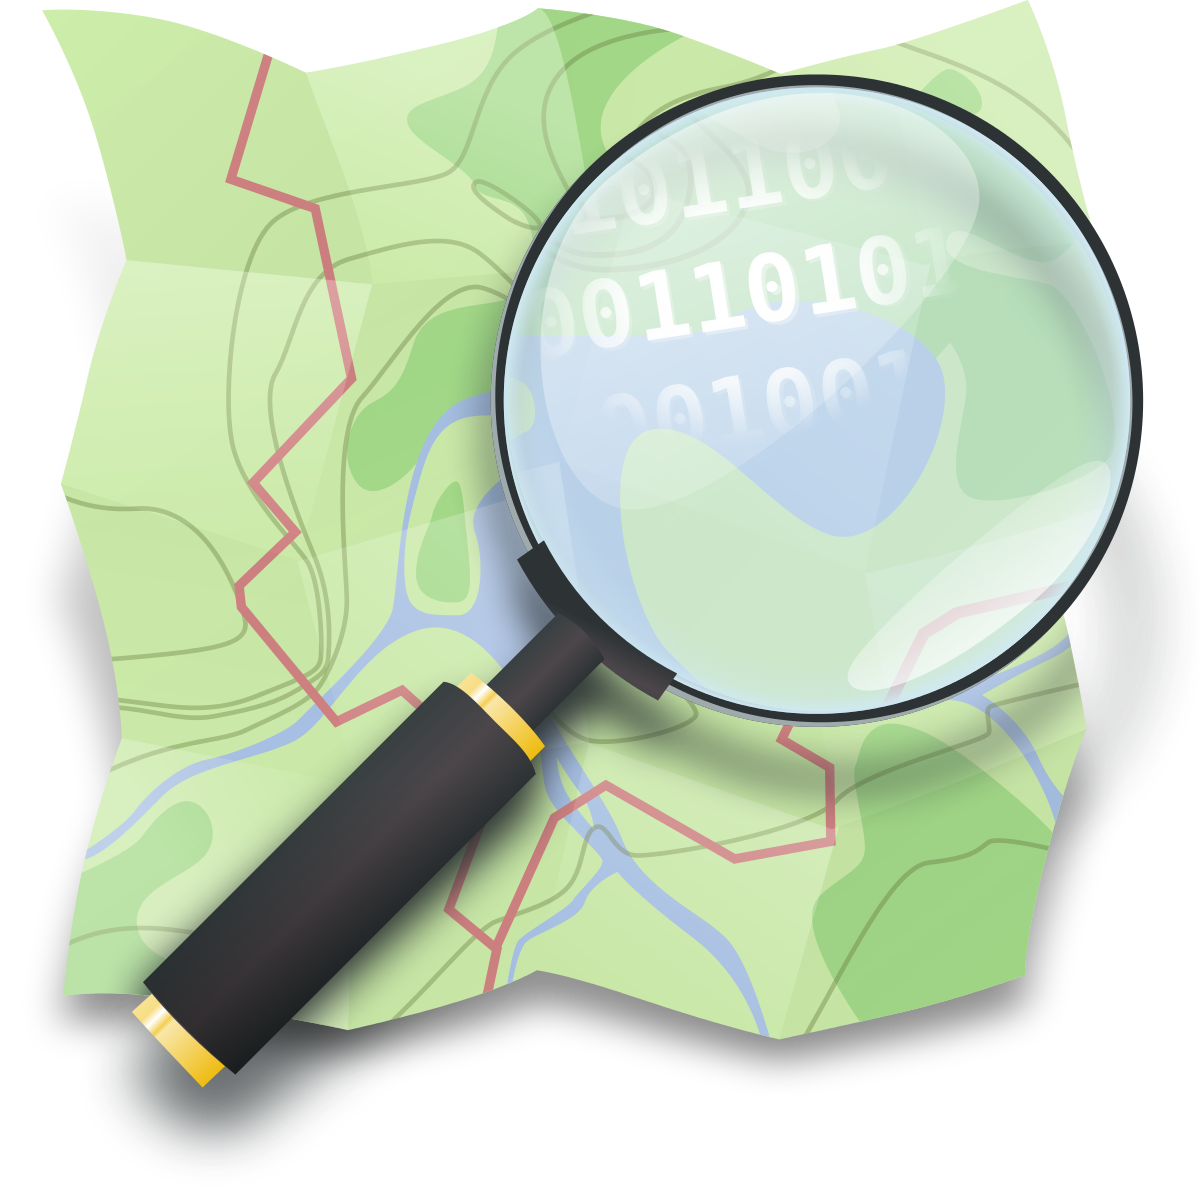 Openstreetmap wikipedia . Clipart map build your own